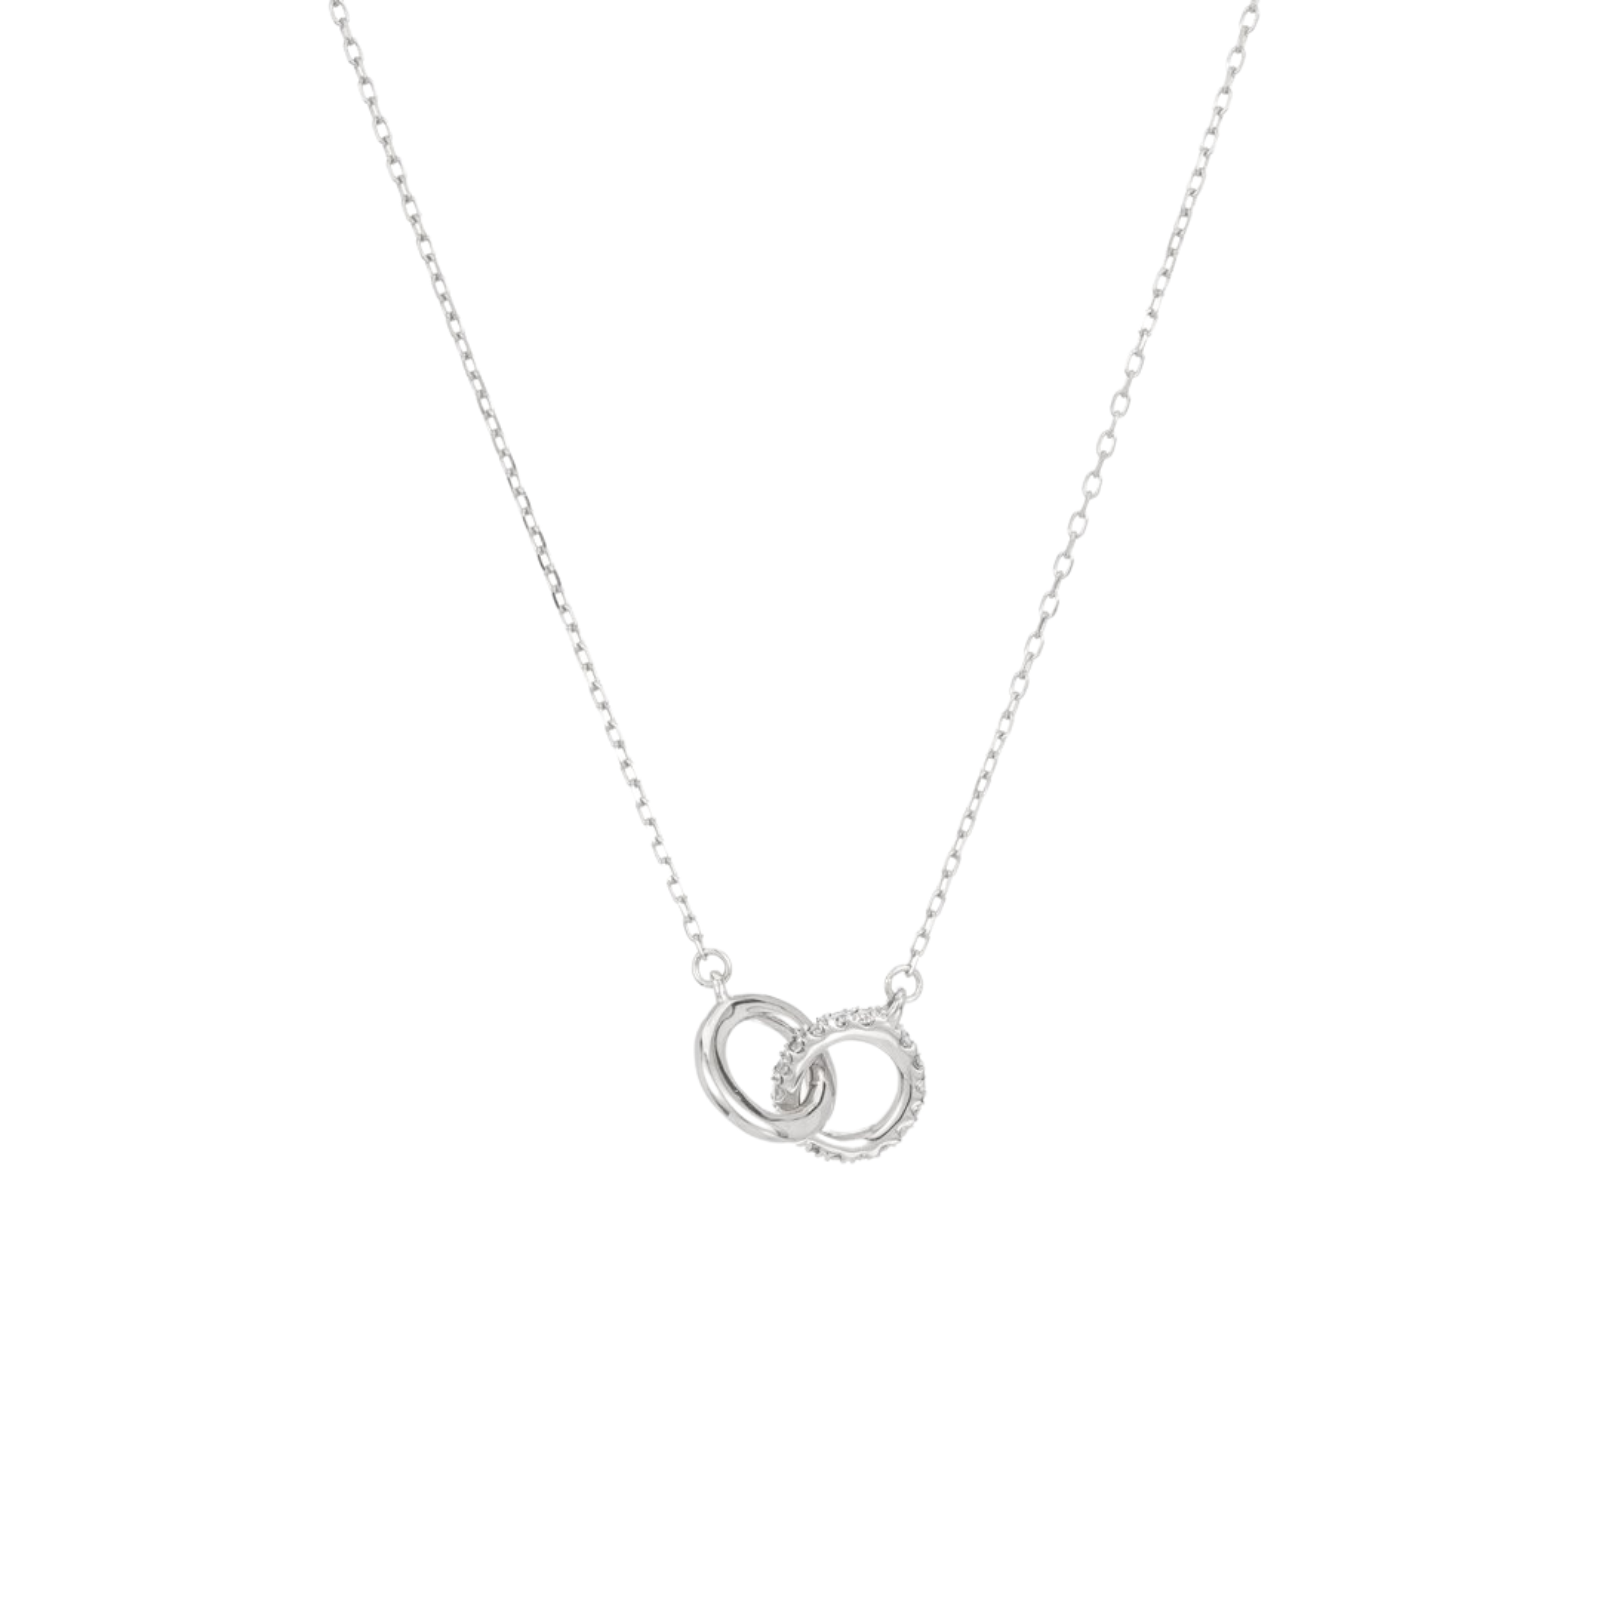 Adina Reyter Interlocking Loop Necklace Silver